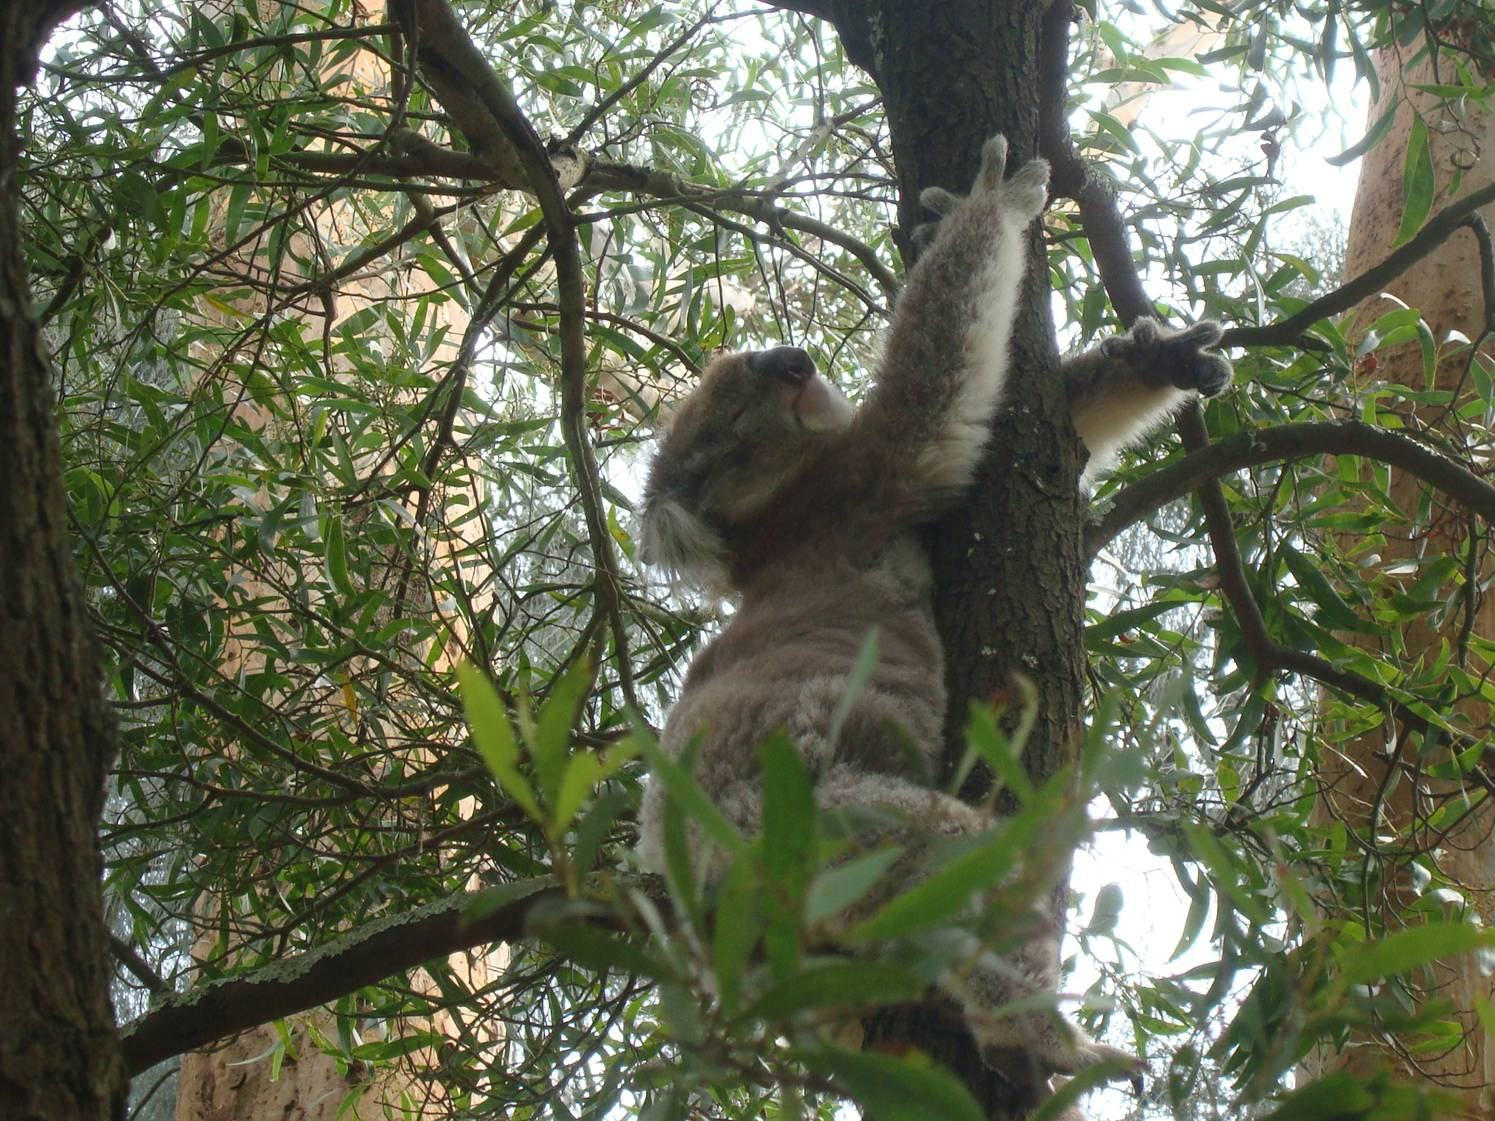 Very cute koala.  Essentially boring.  They sleep twenty hours a day and spend their waking time in a drugged stupor.